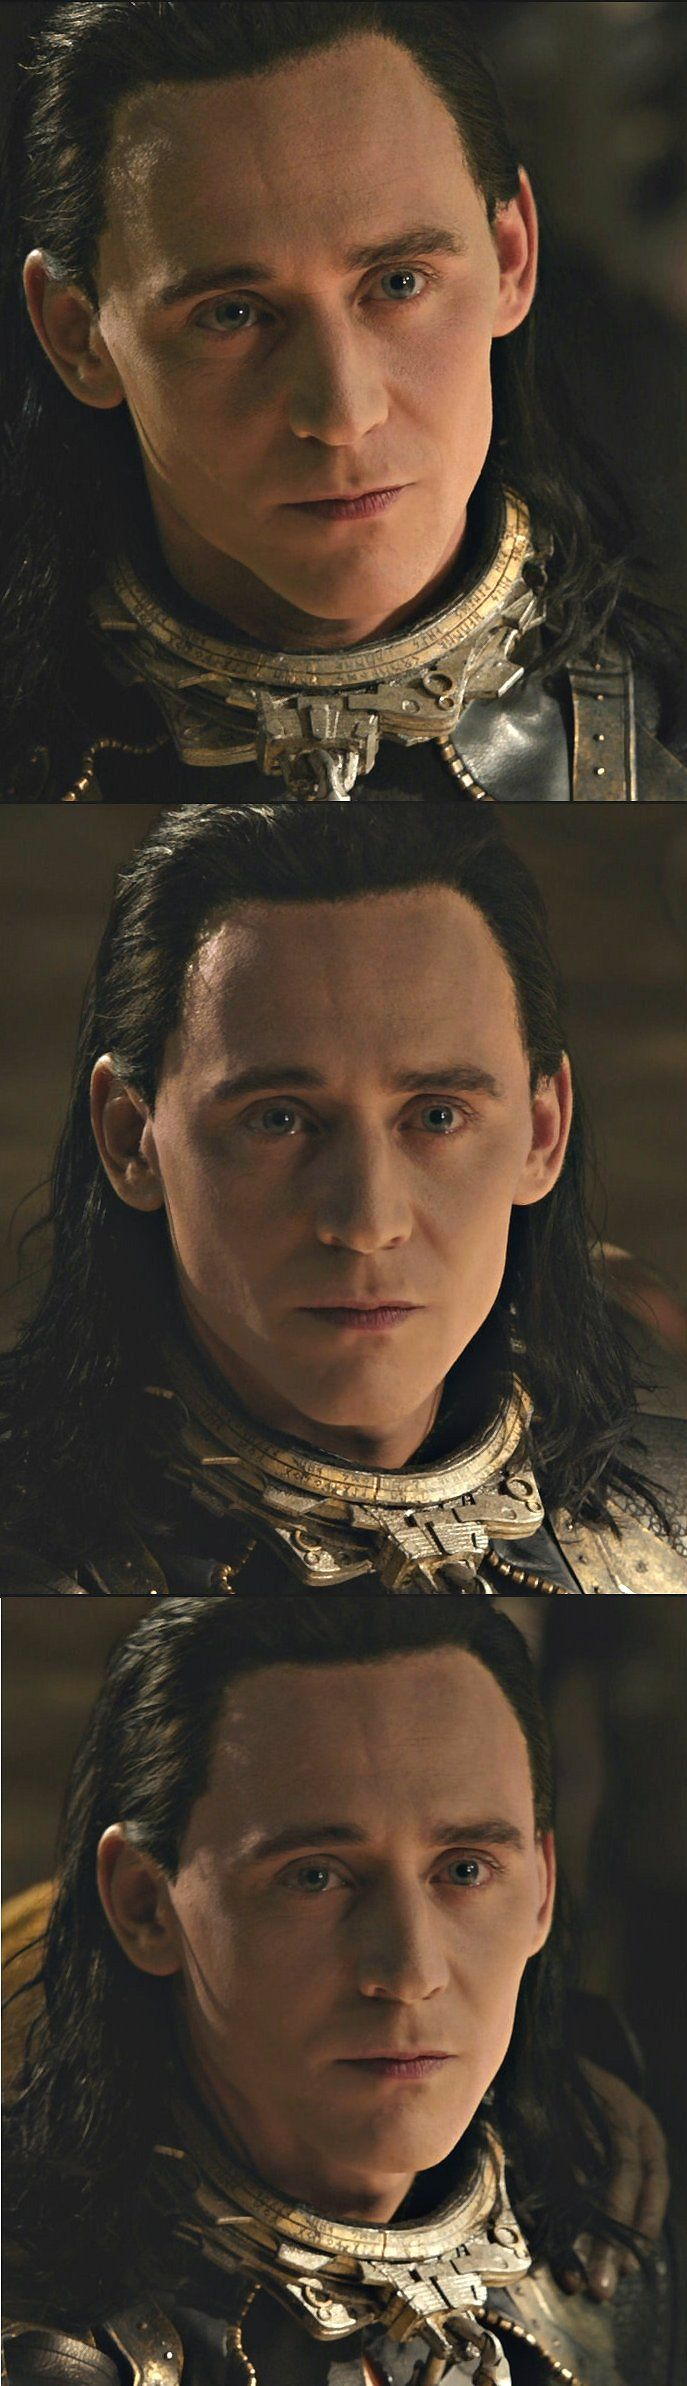 "Tom Hiddleston ""Loki"" Large stills from ""The Dark World"" from http://ask-son-of-laufey.tumblr.com/post/84576176224"